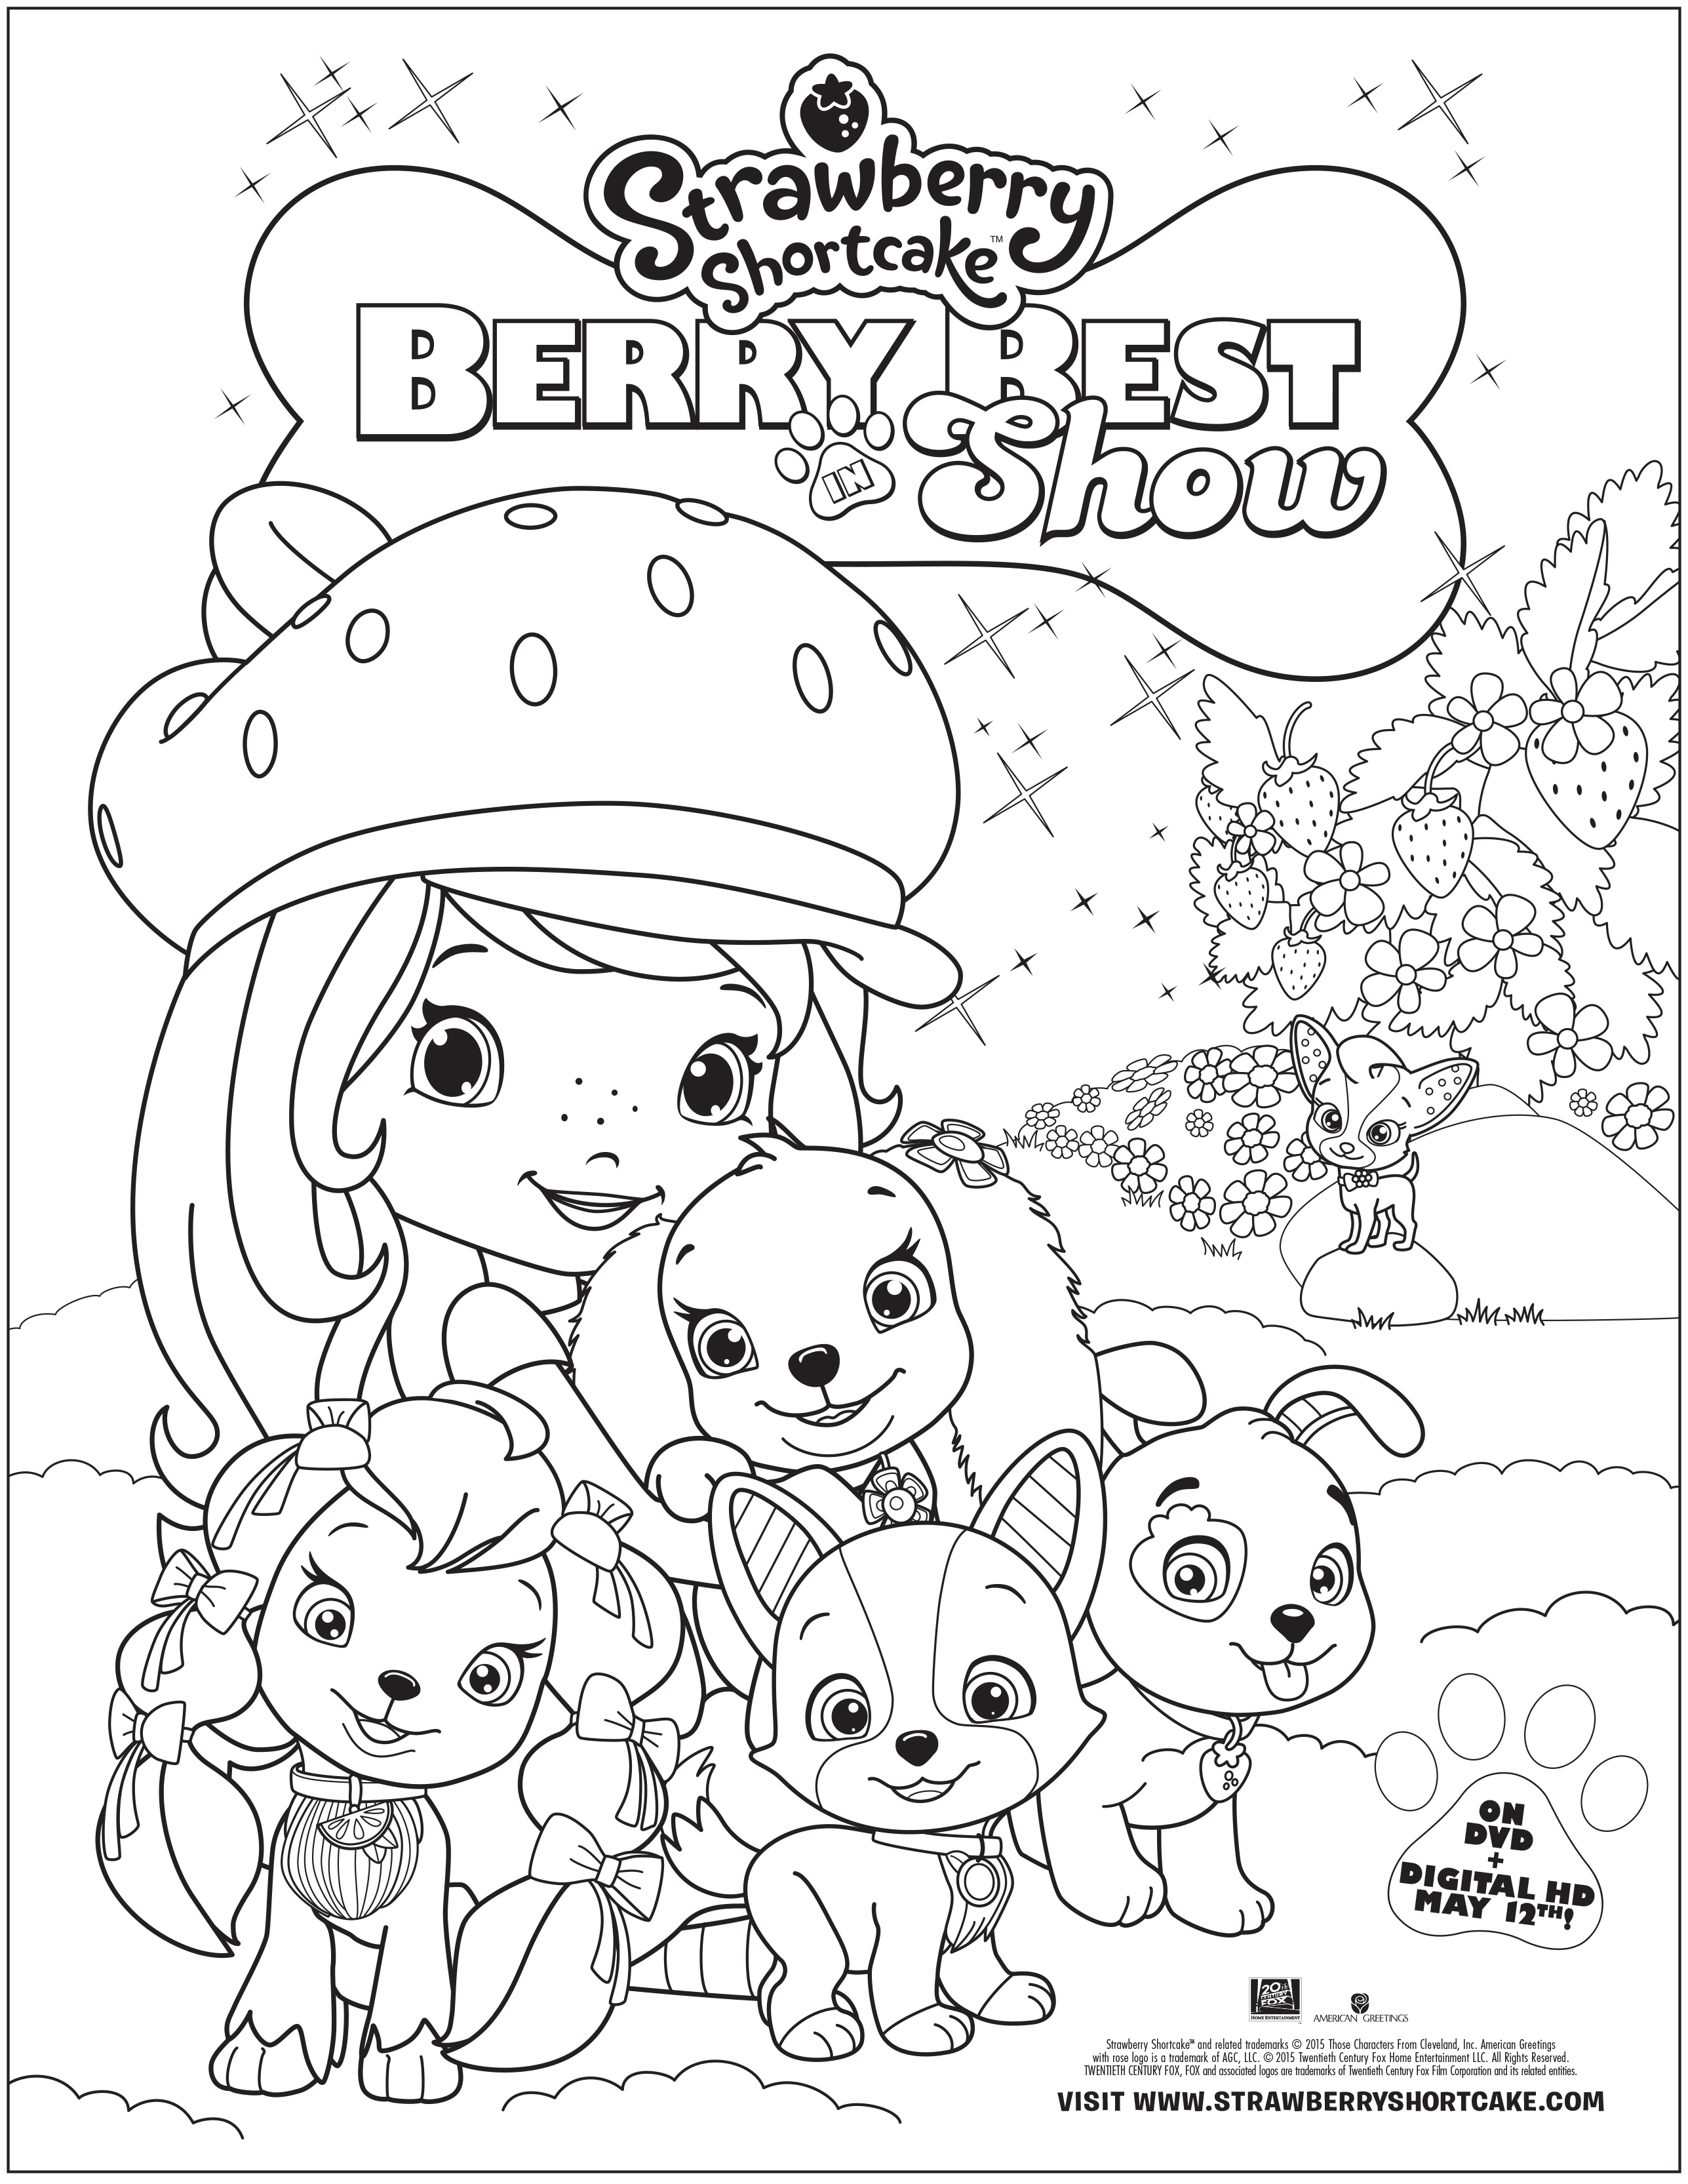 strawberry shortcake coloring pages free - photo#32